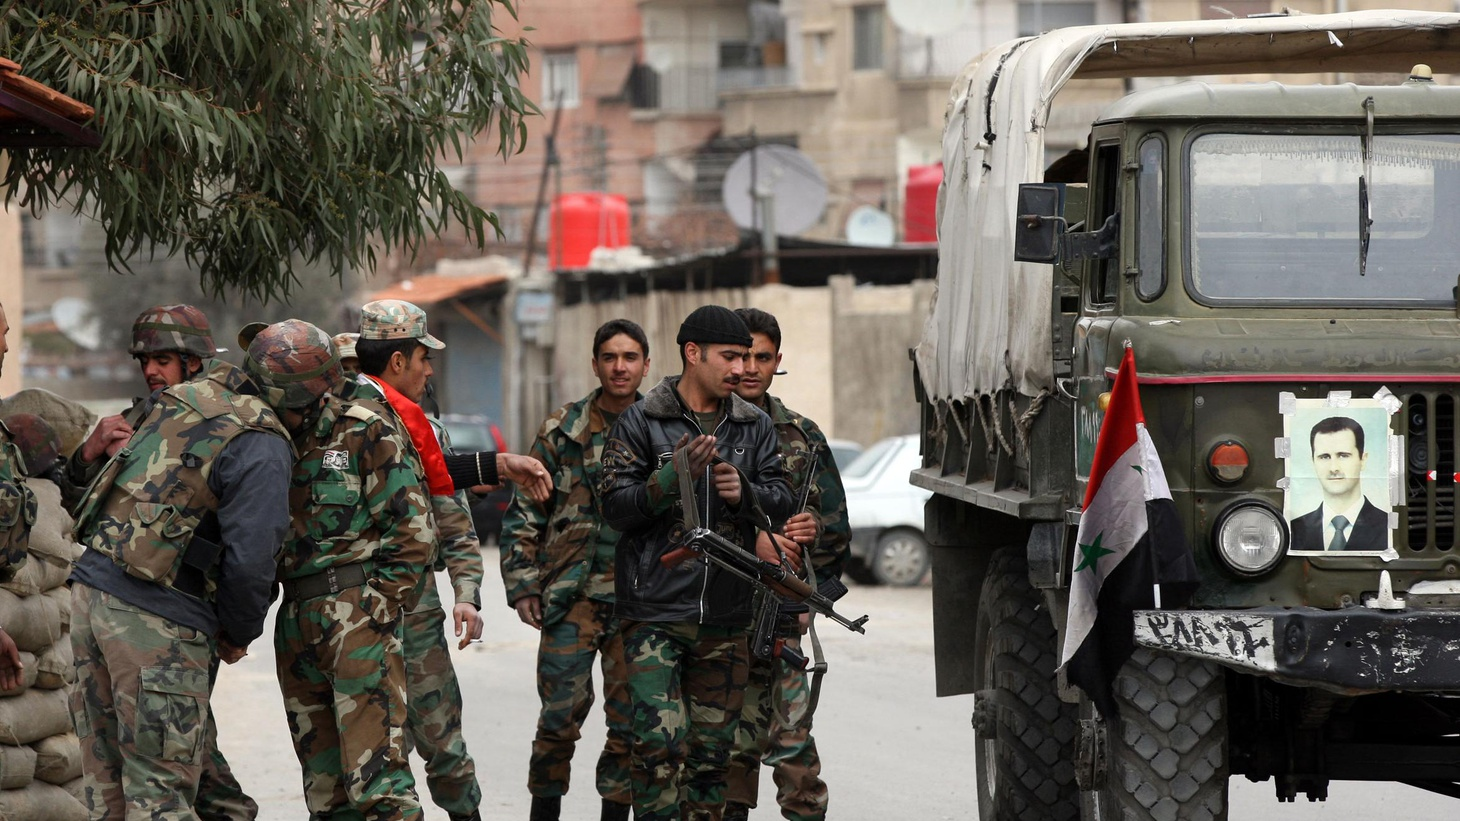 Syria's Bashar al-Assad has called for elections, even as his troops make war on their own people.